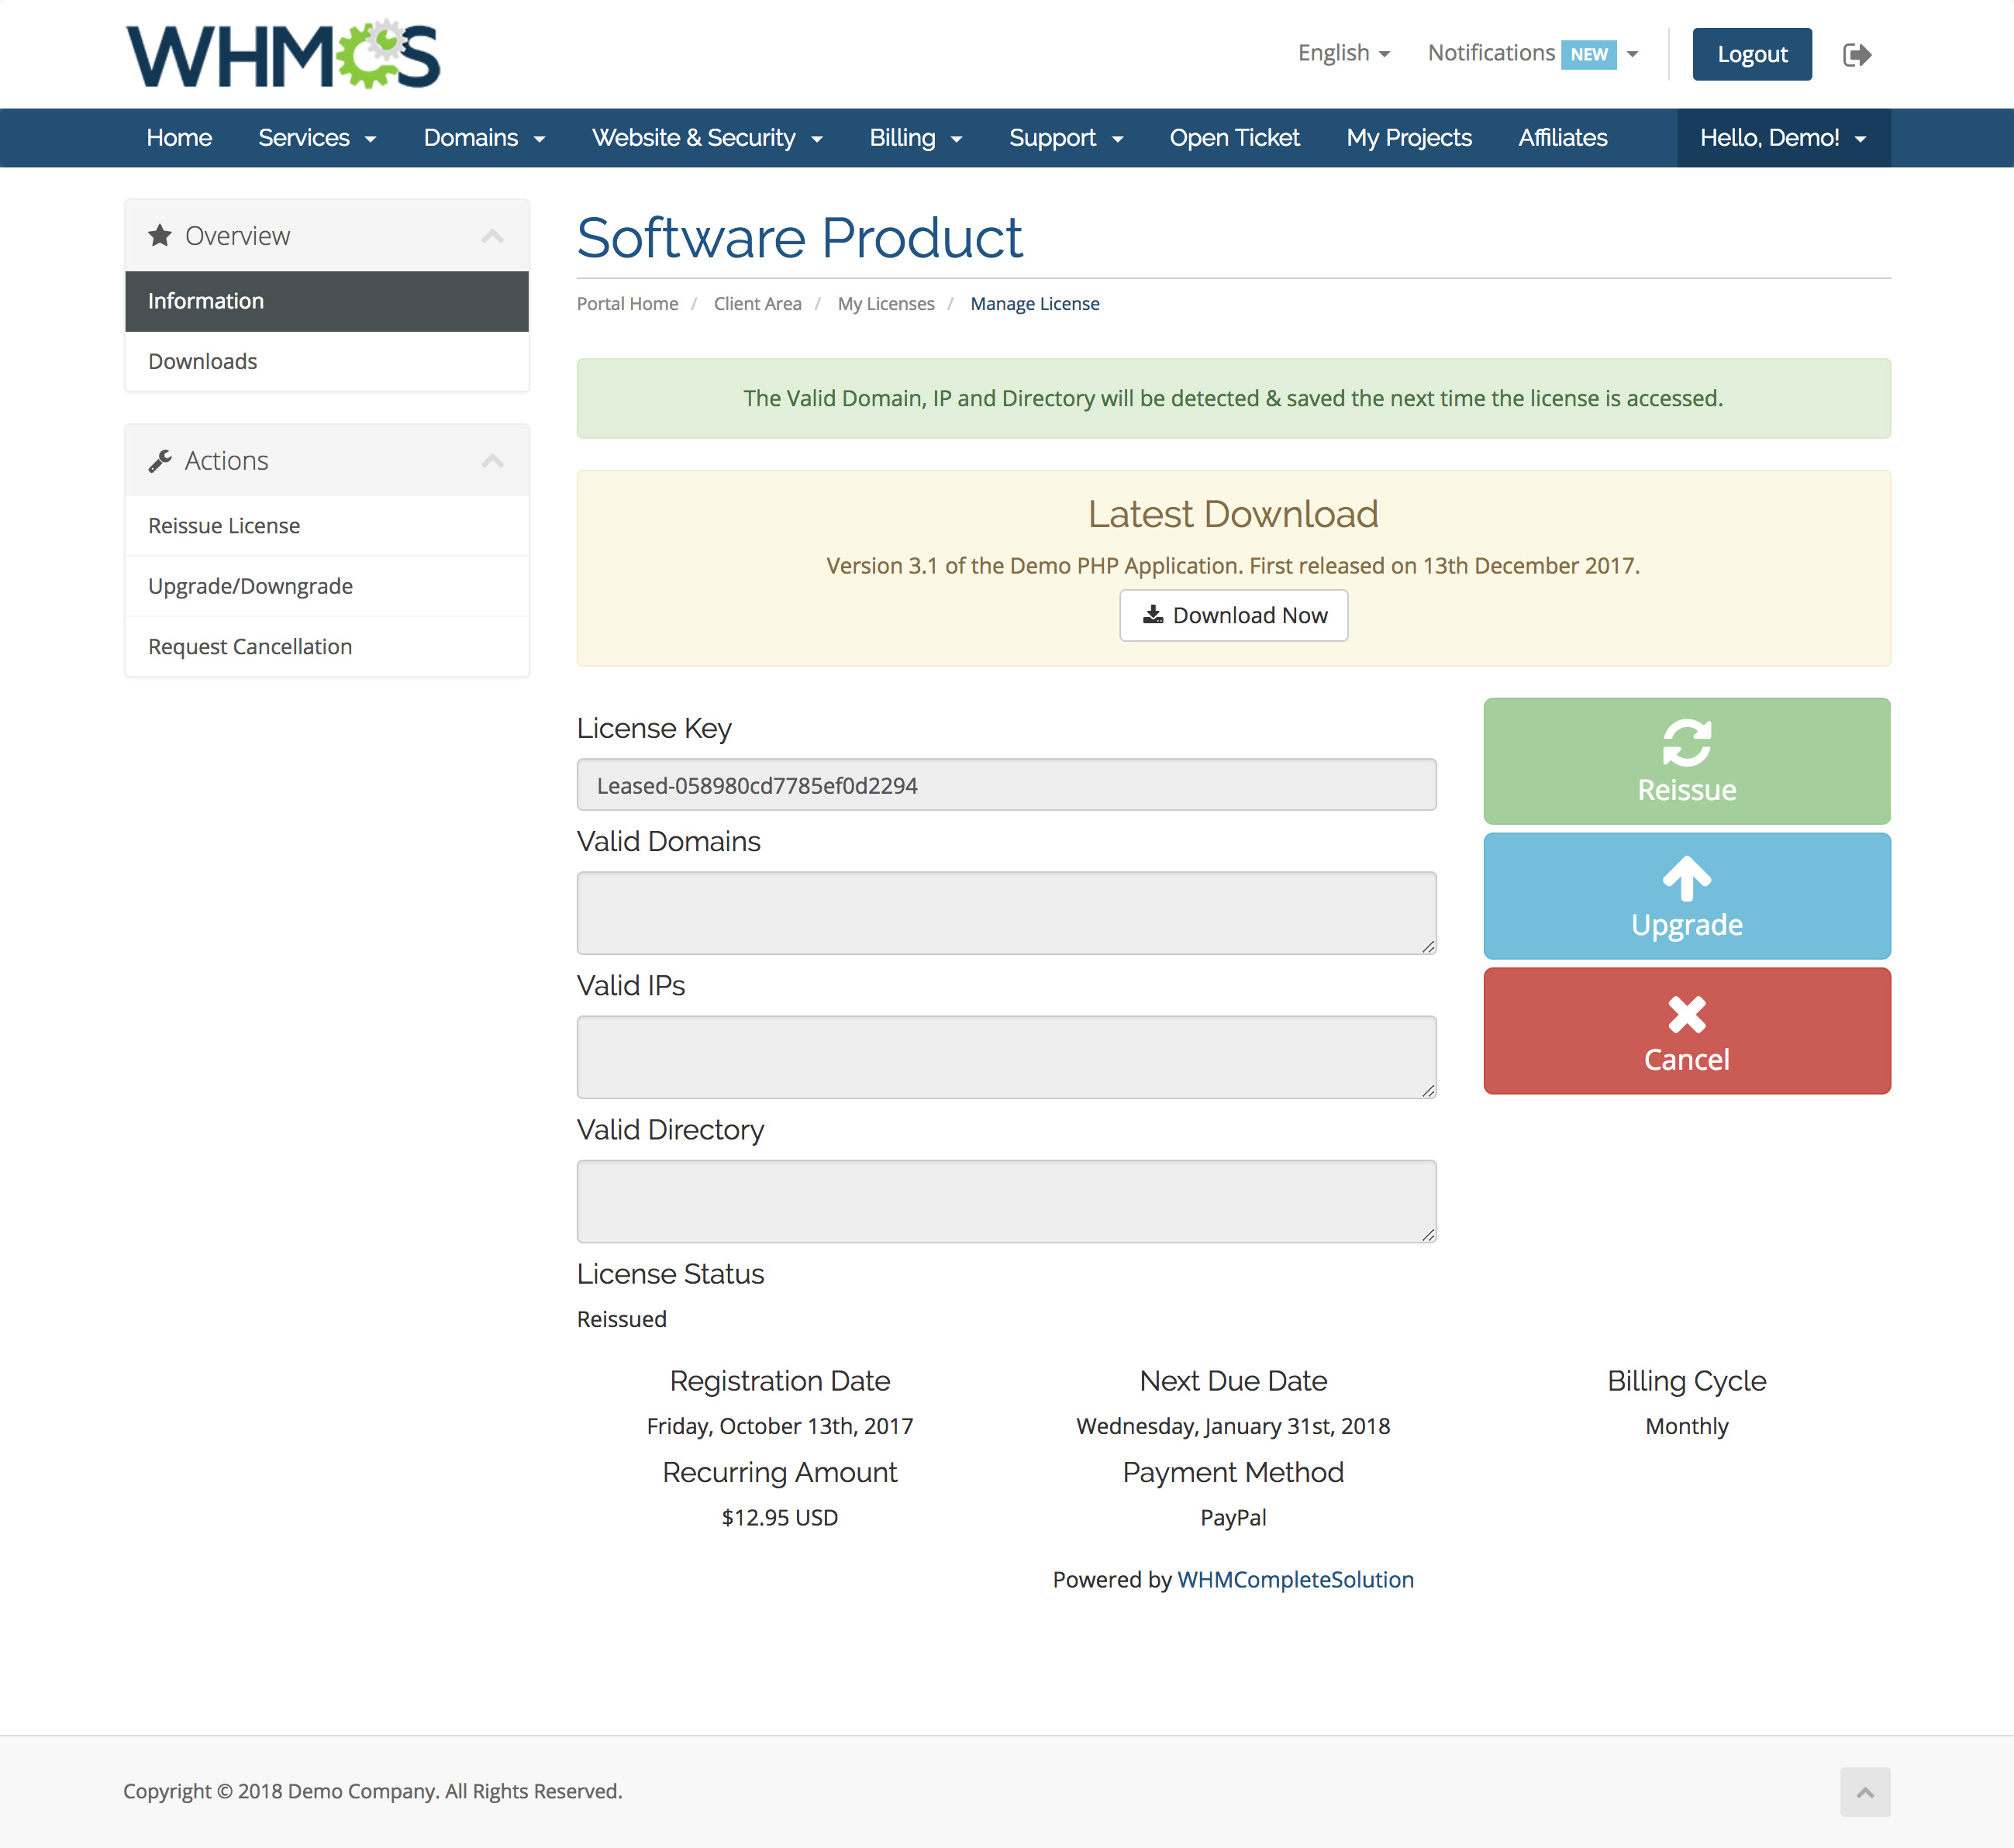 whmcs-licensing-addon-client.jpg